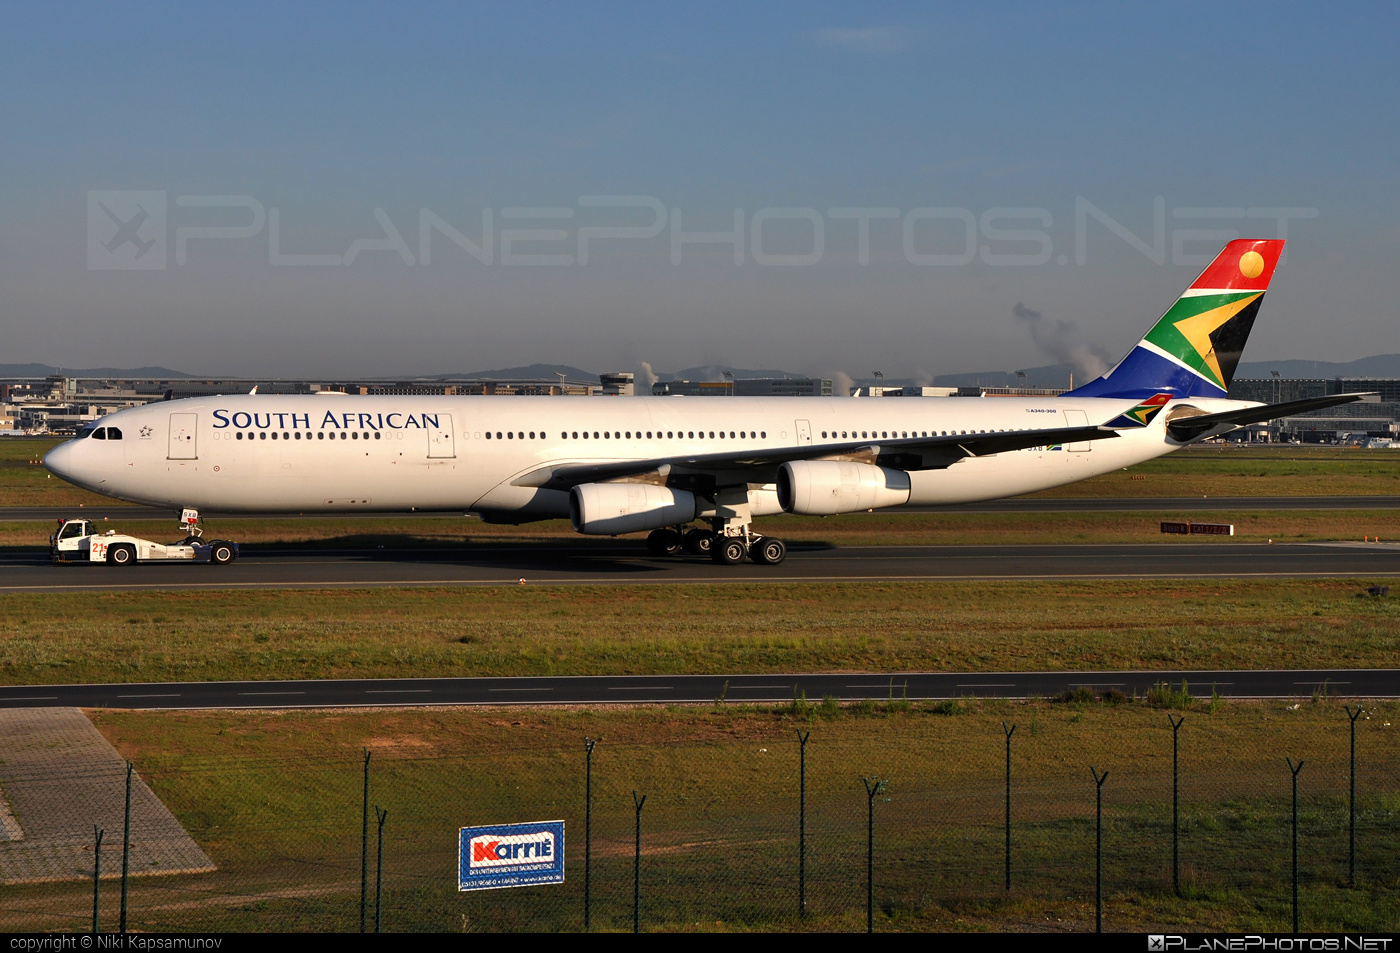 Airbus A340-313E - ZS-SXB operated by South African Airways #a340 #a340family #airbus #airbus340